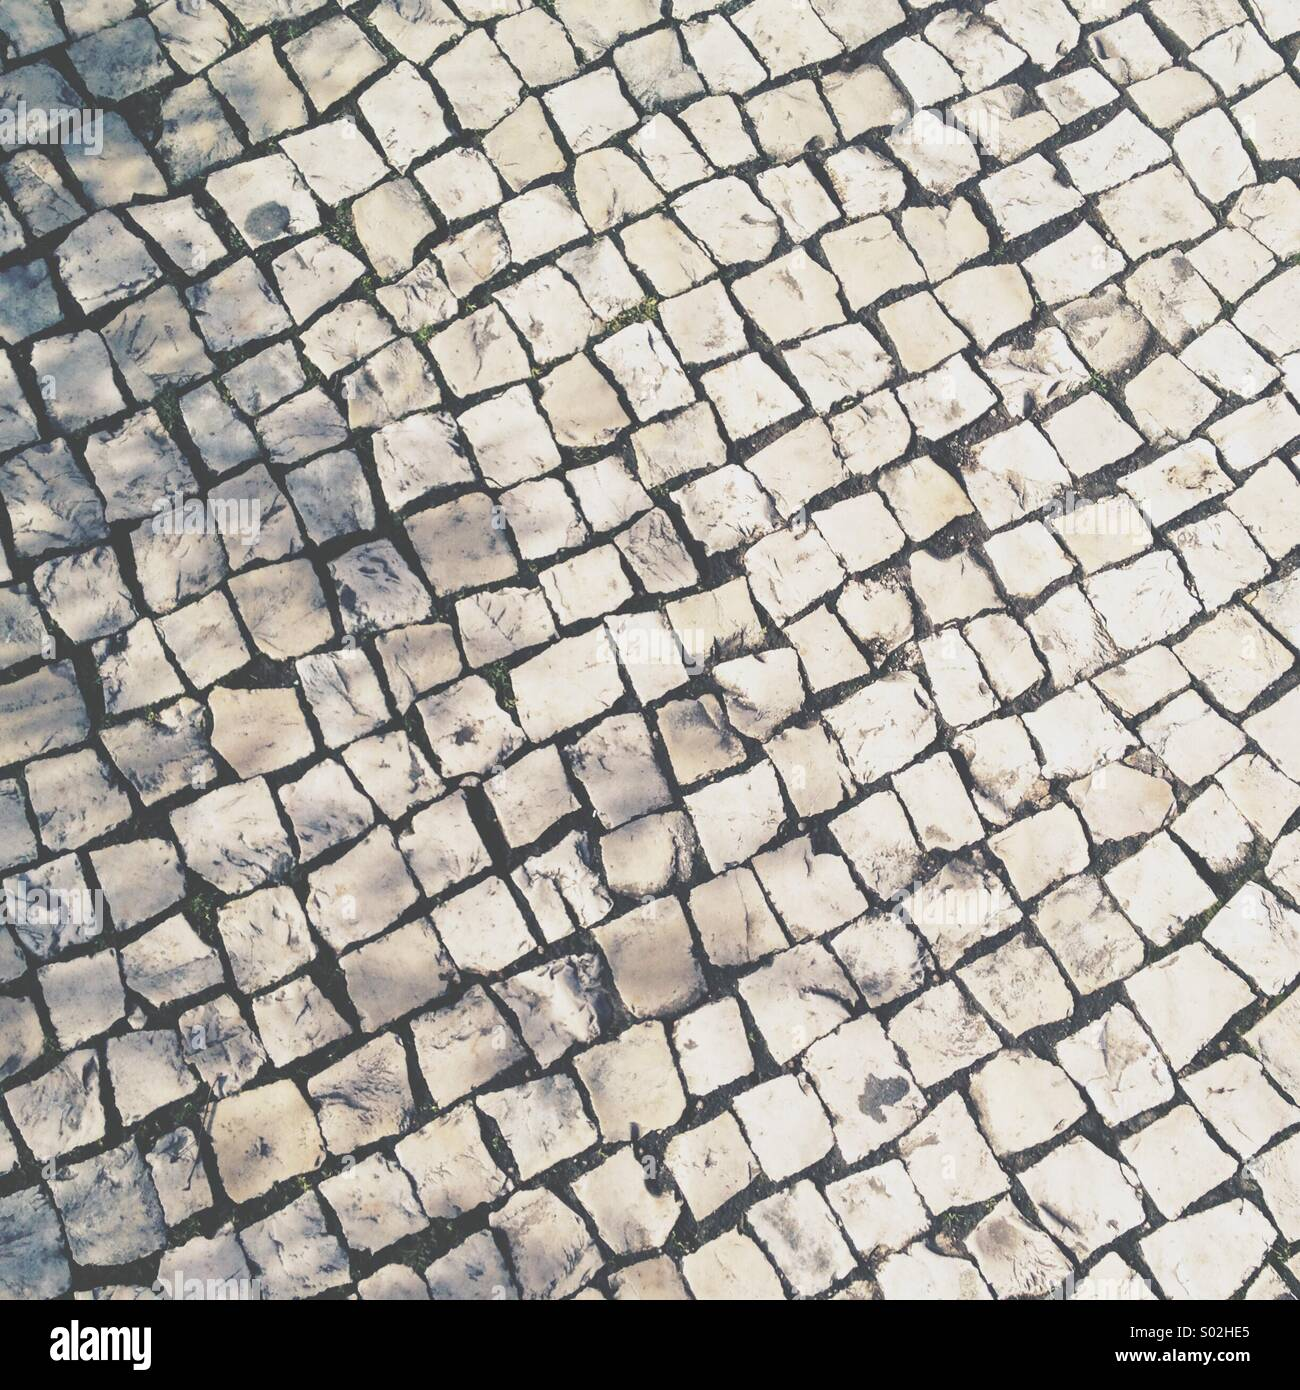 Typical Portuguese street pavement, cobbled stones. - Stock Image